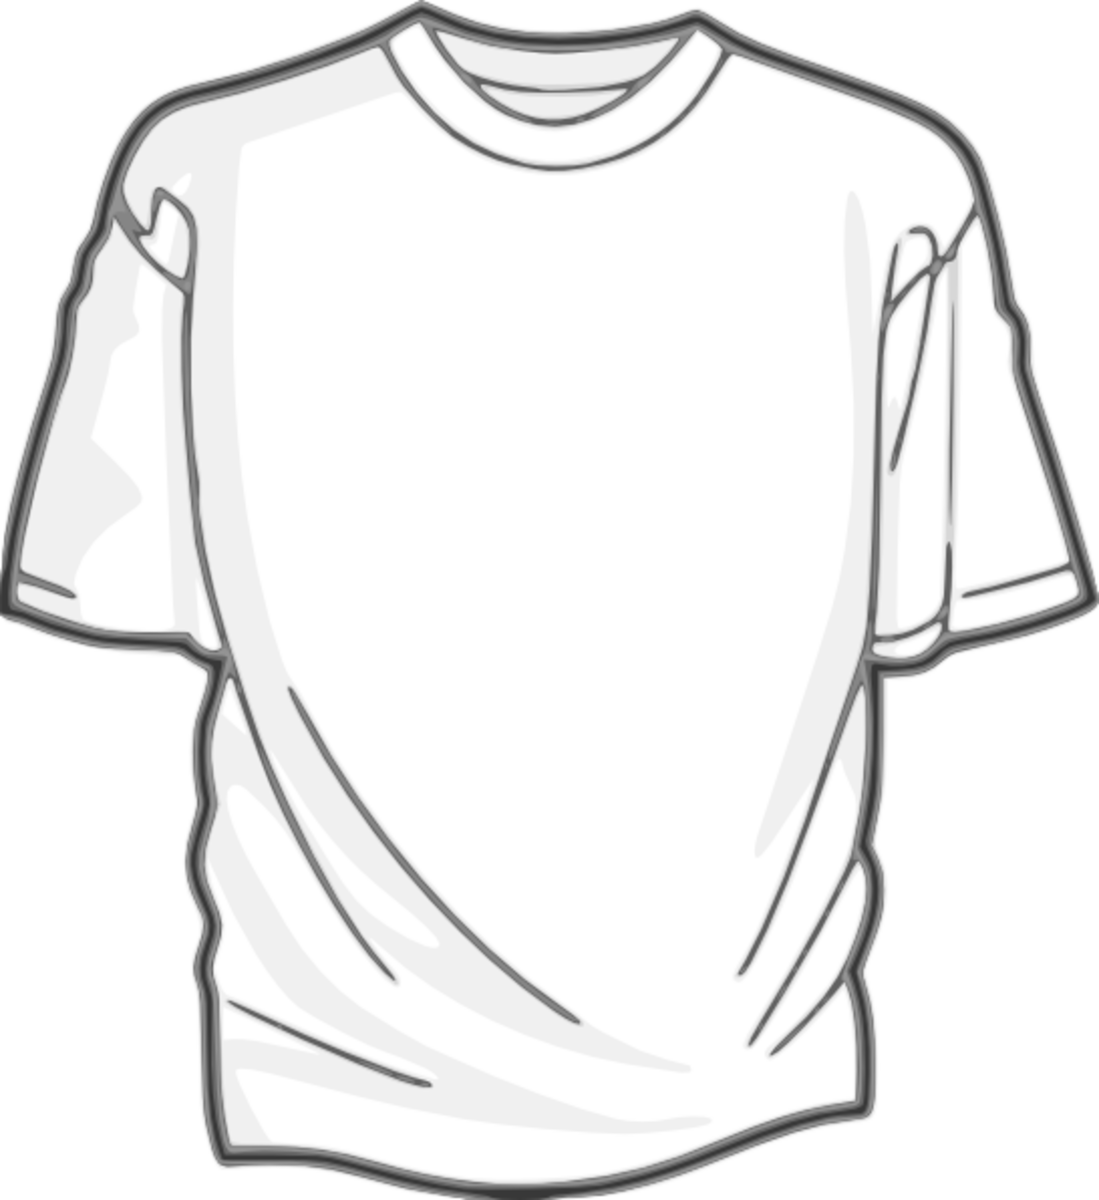 Dad's T Shirt Coloring Page